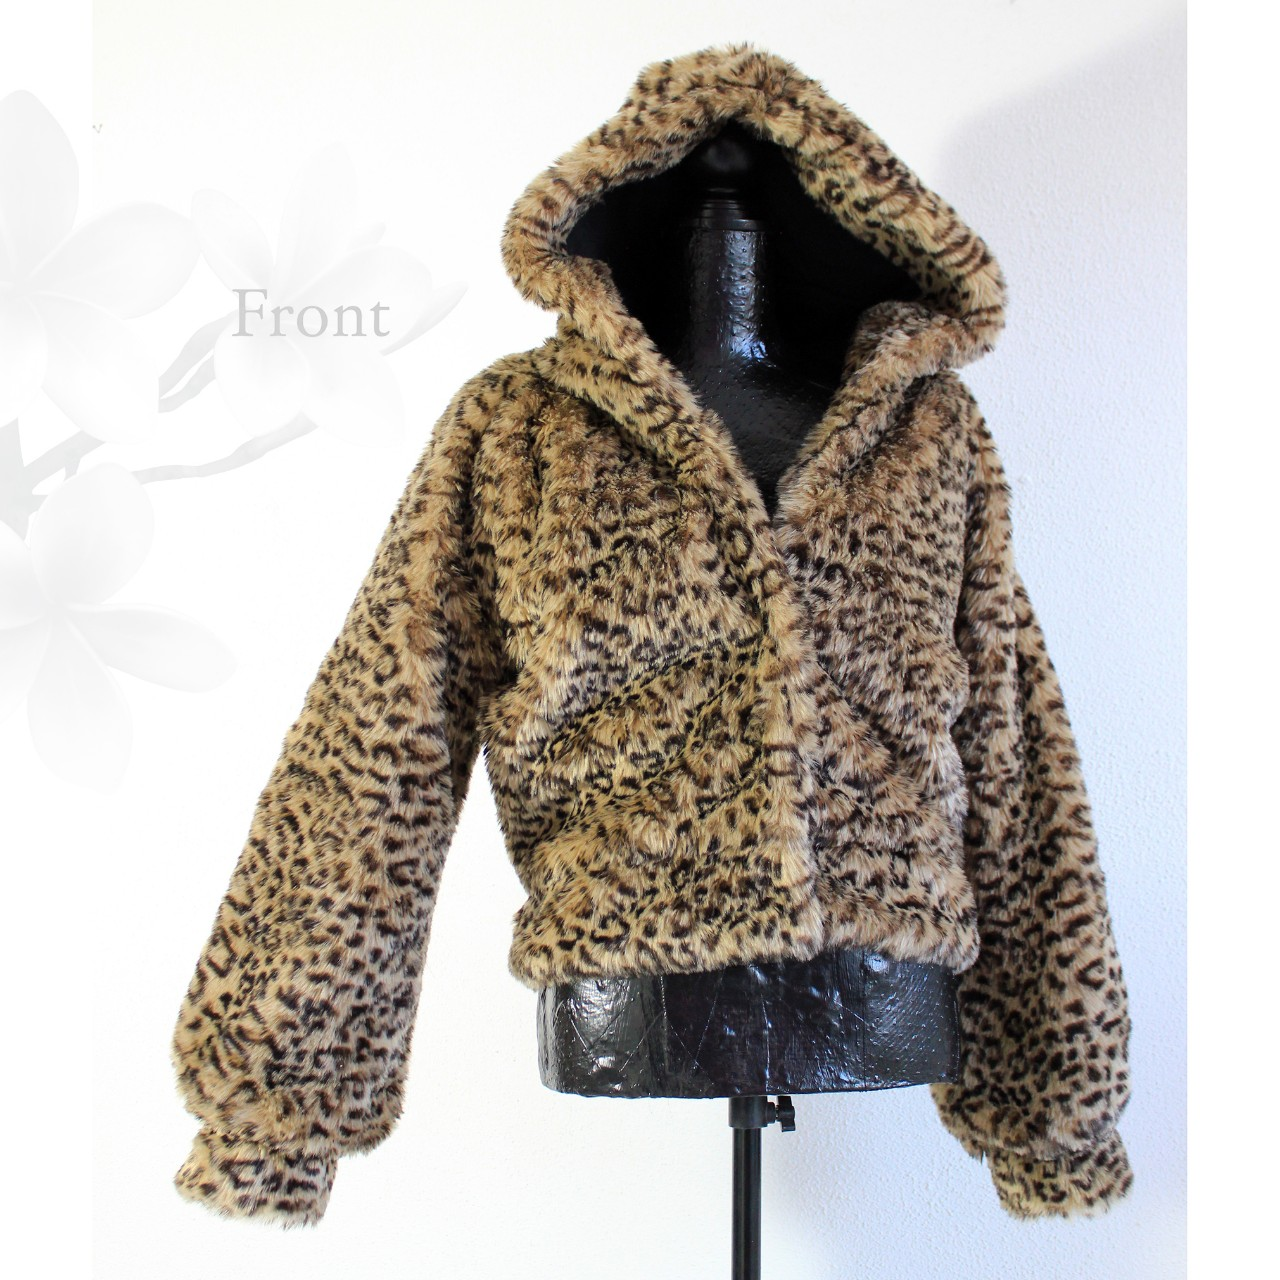 Product Image 1 - Leopard Faux Fur Jacket with